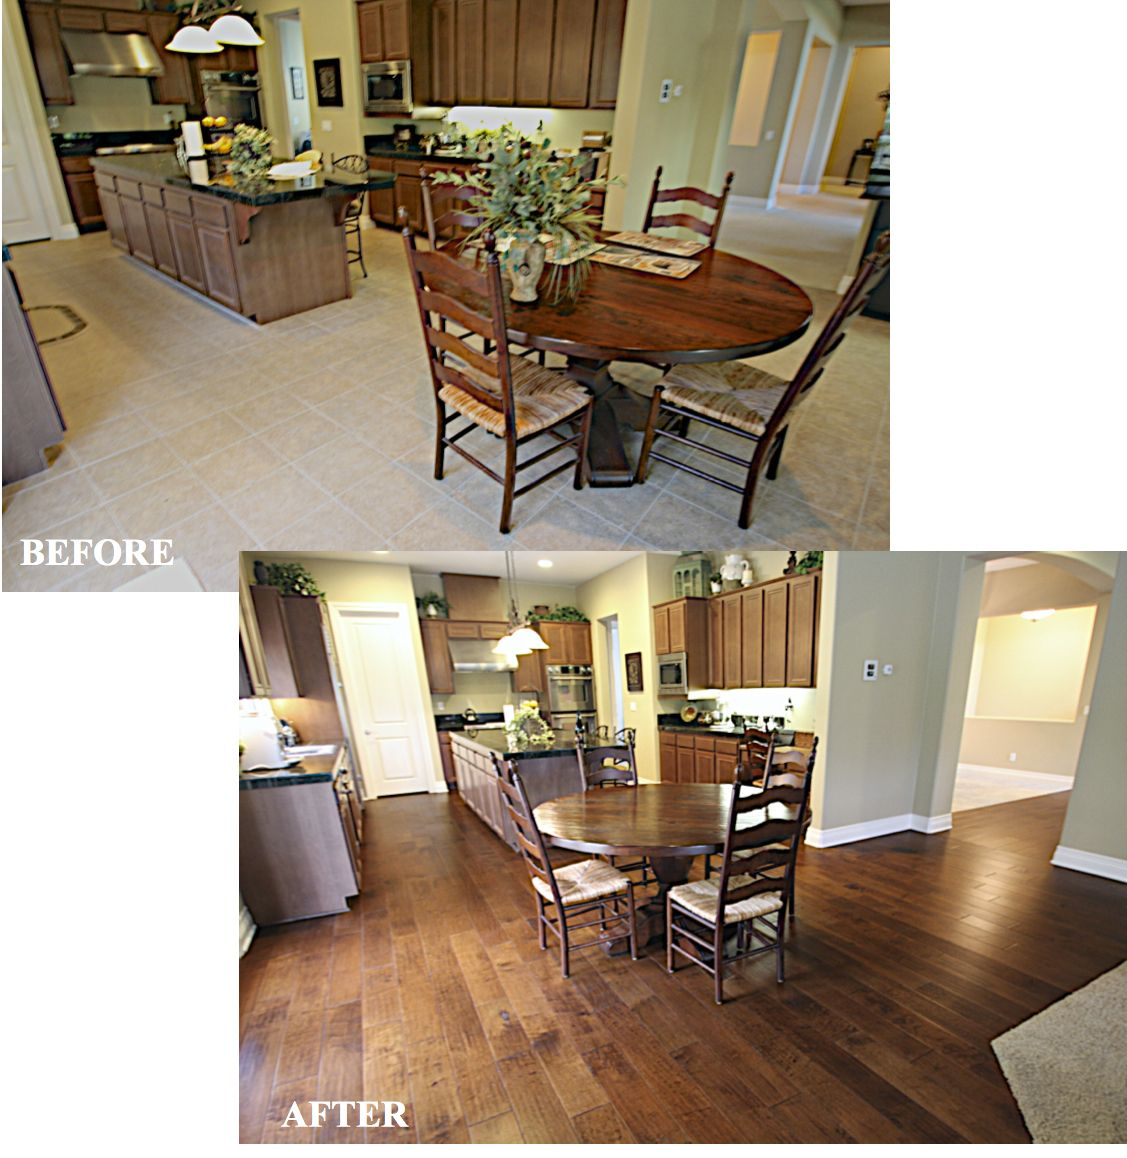 West Coast Flooring Can Completely Change Your Kitchen